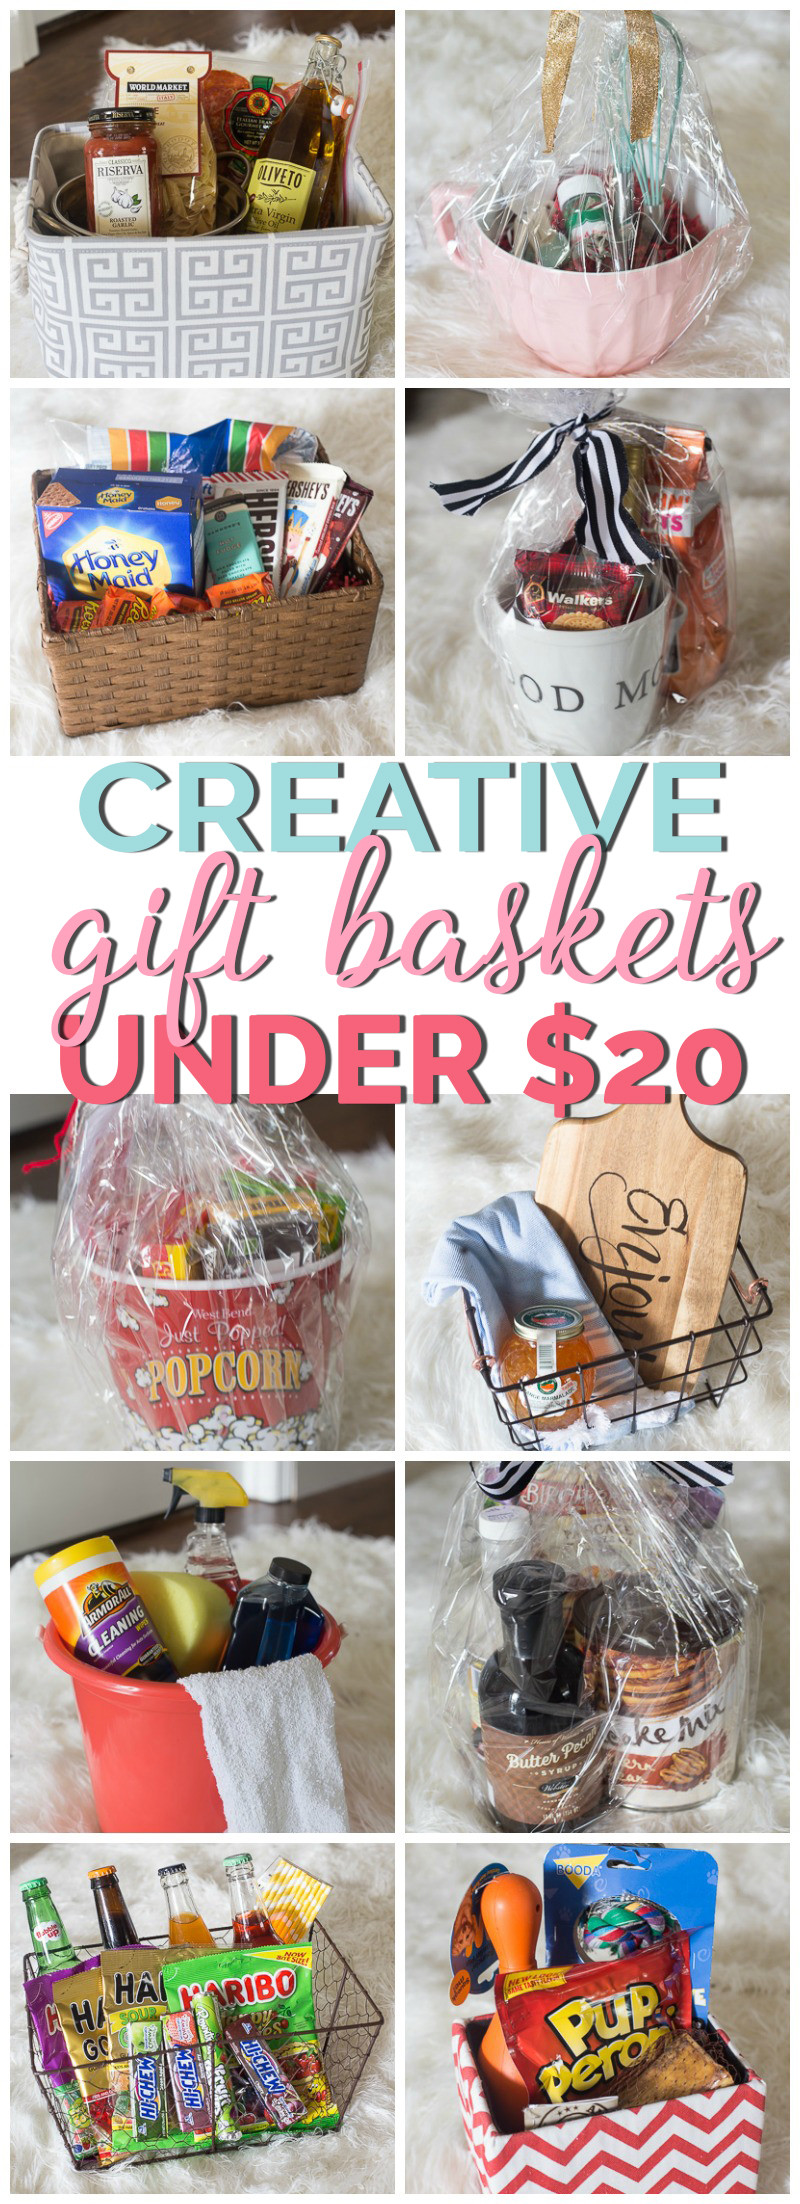 Best ideas about Basket Gift Ideas . Save or Pin Creative Gift Basket Ideas Under $20 Now.